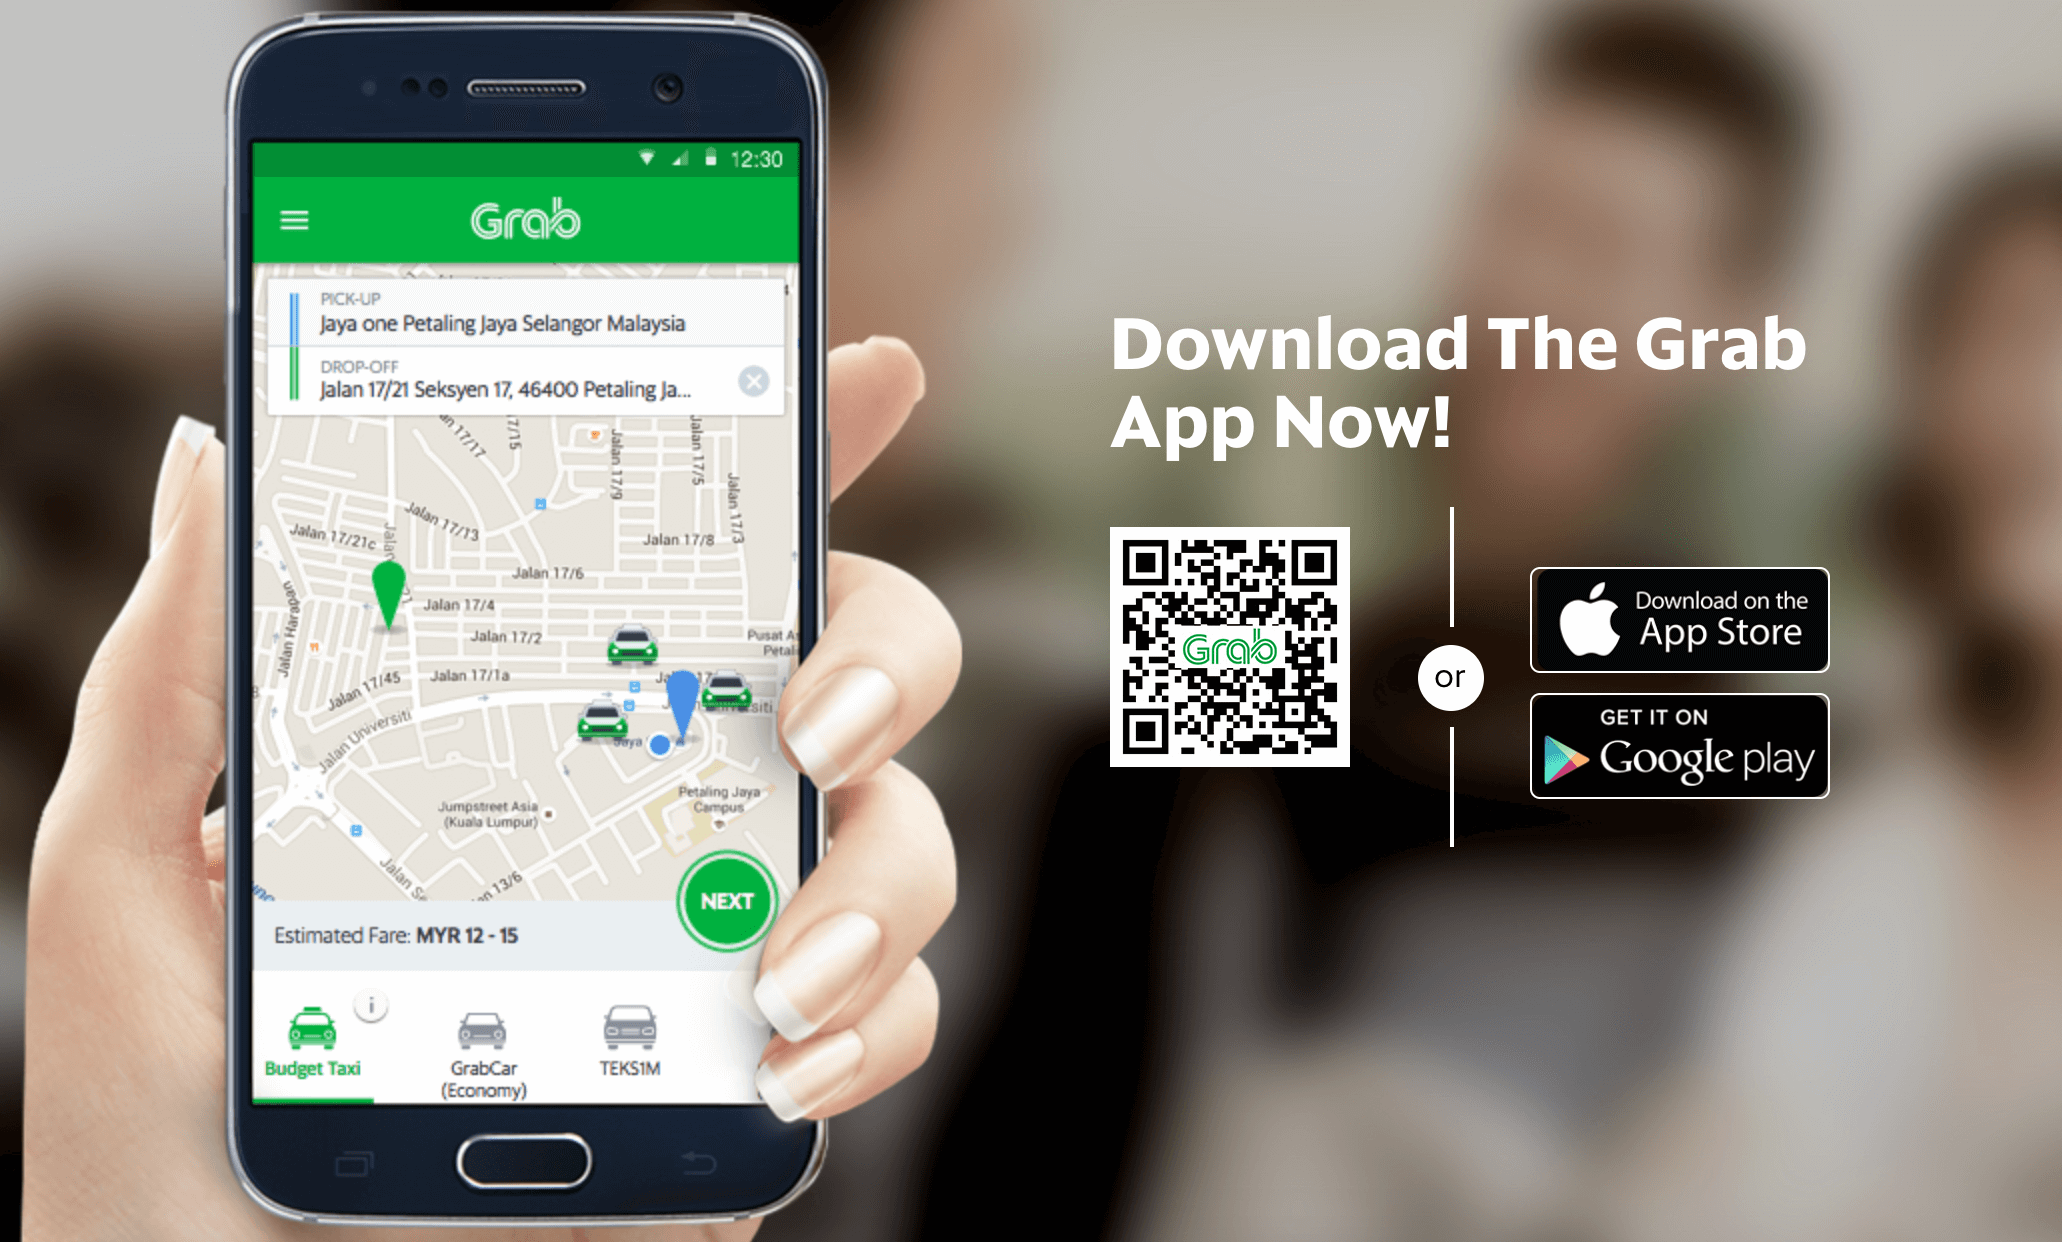 Grab travel site for ride sharing